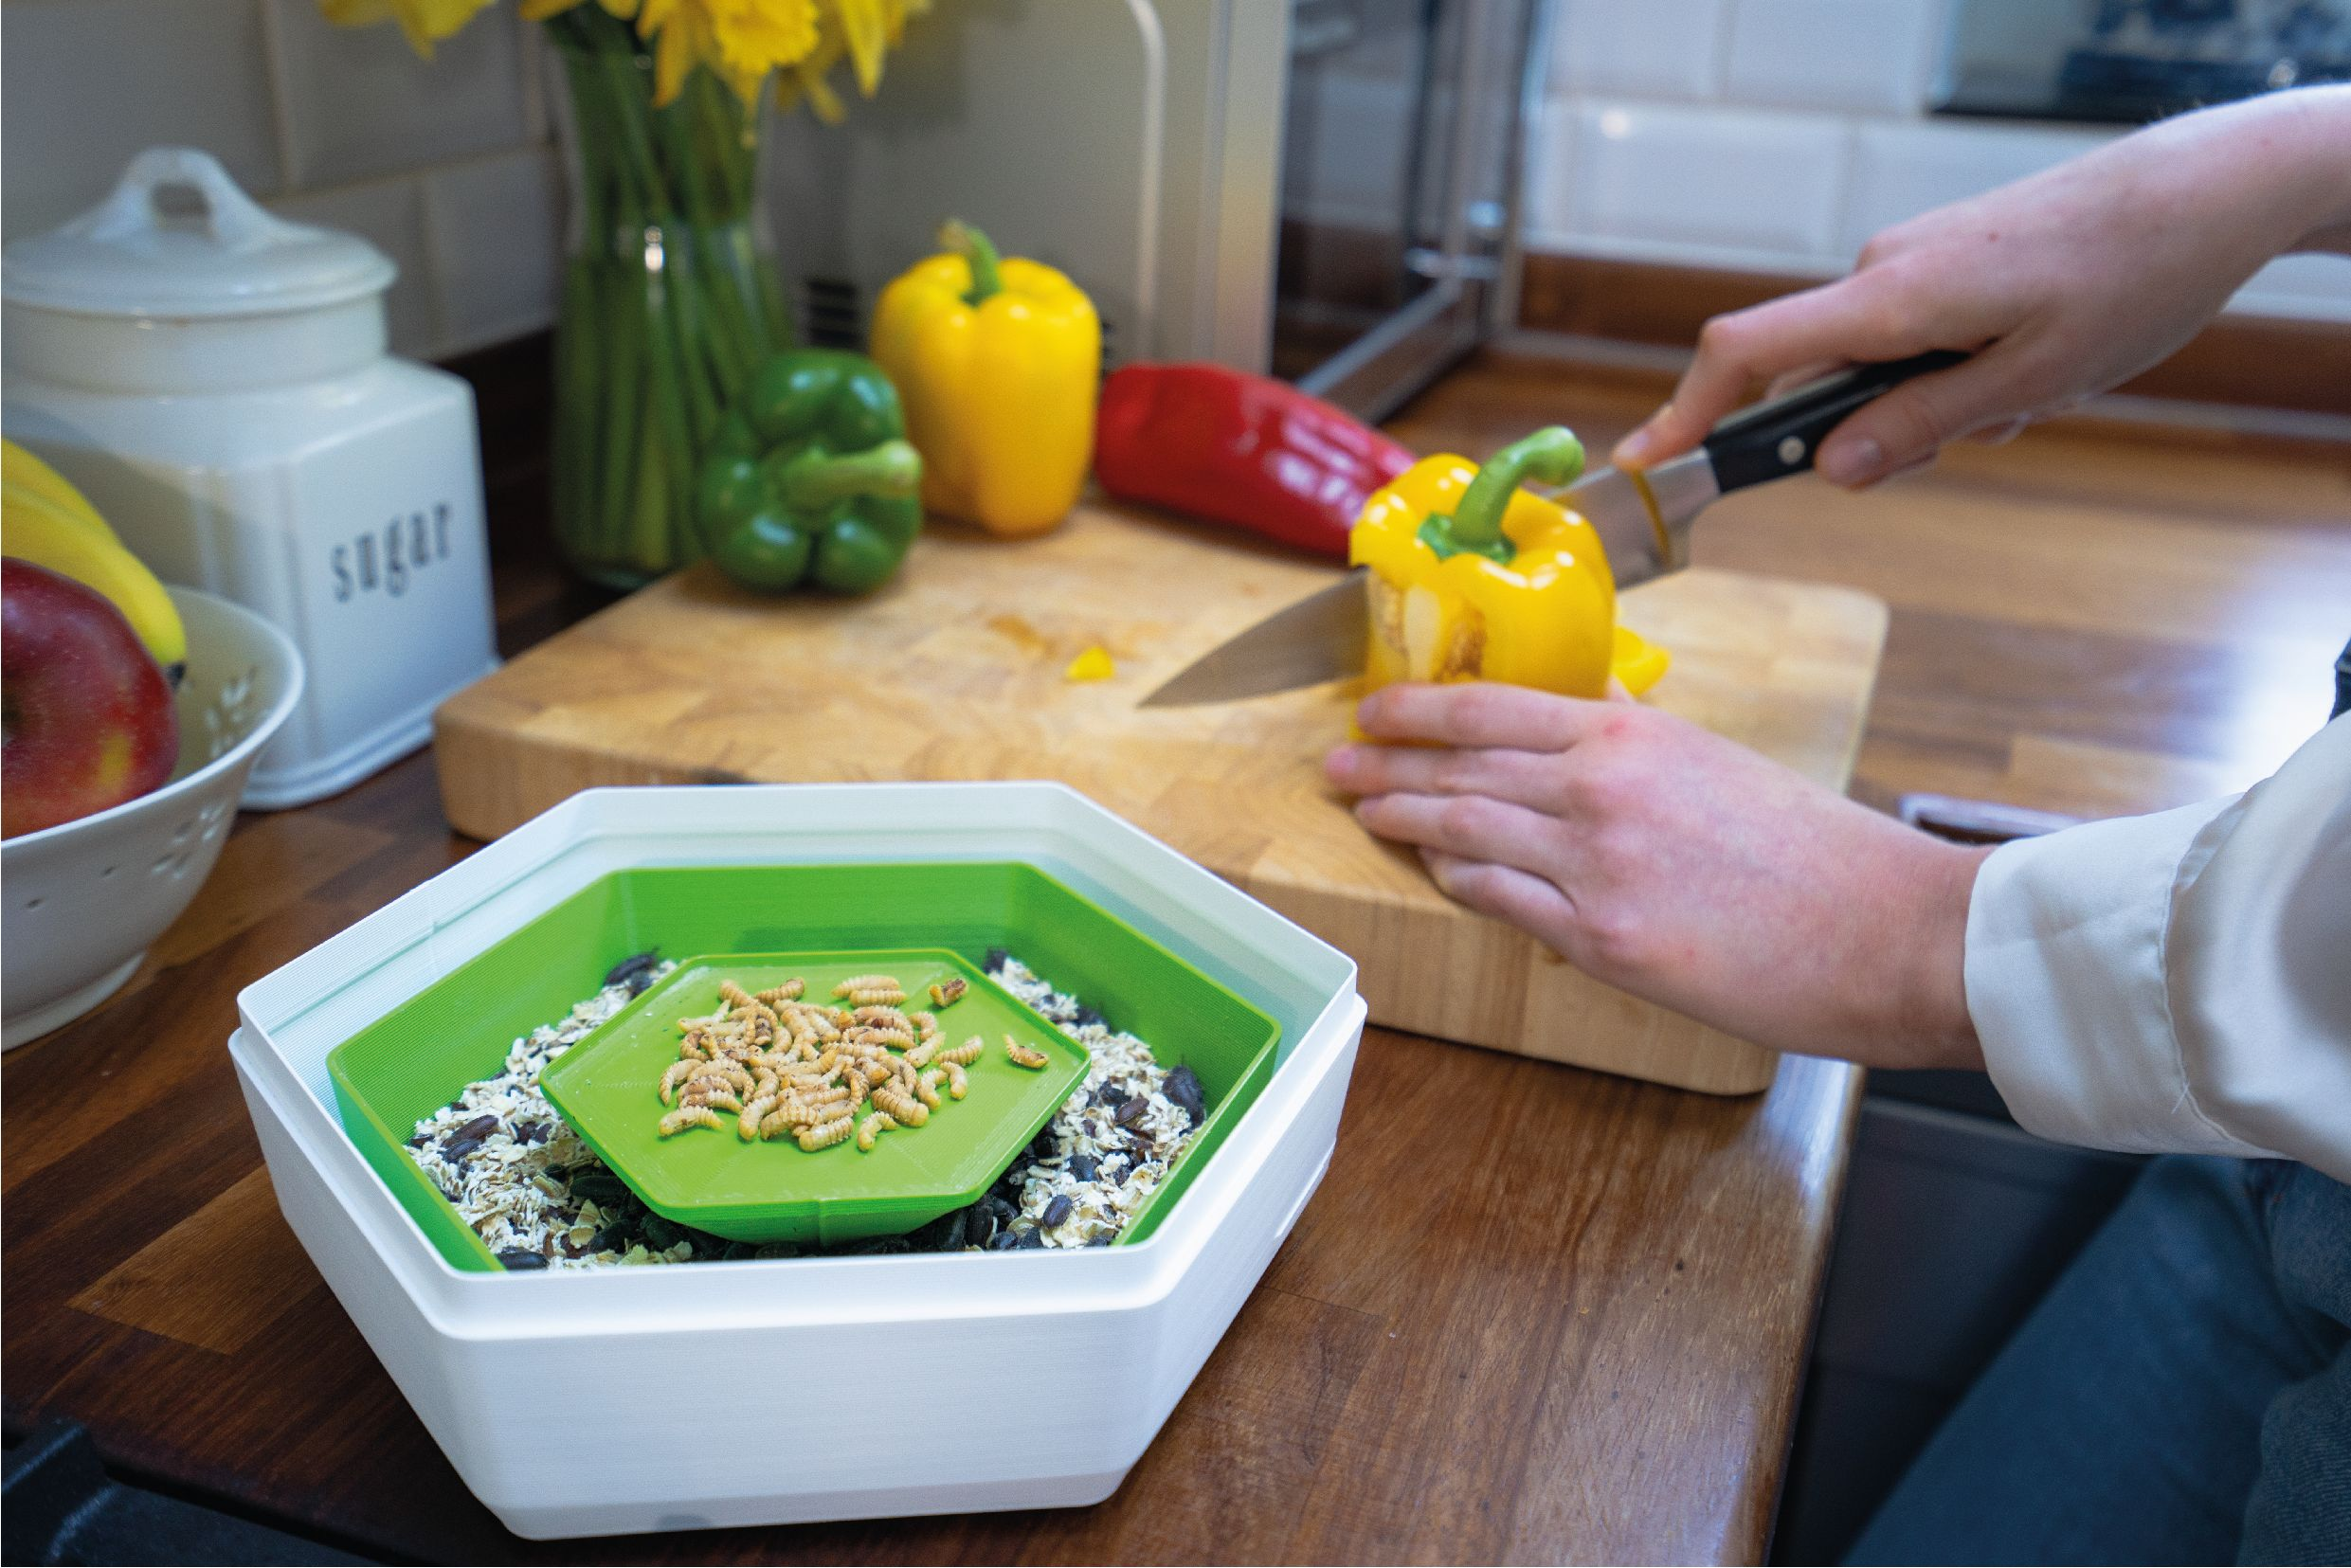 Insect farm as alternative protein in kitchen